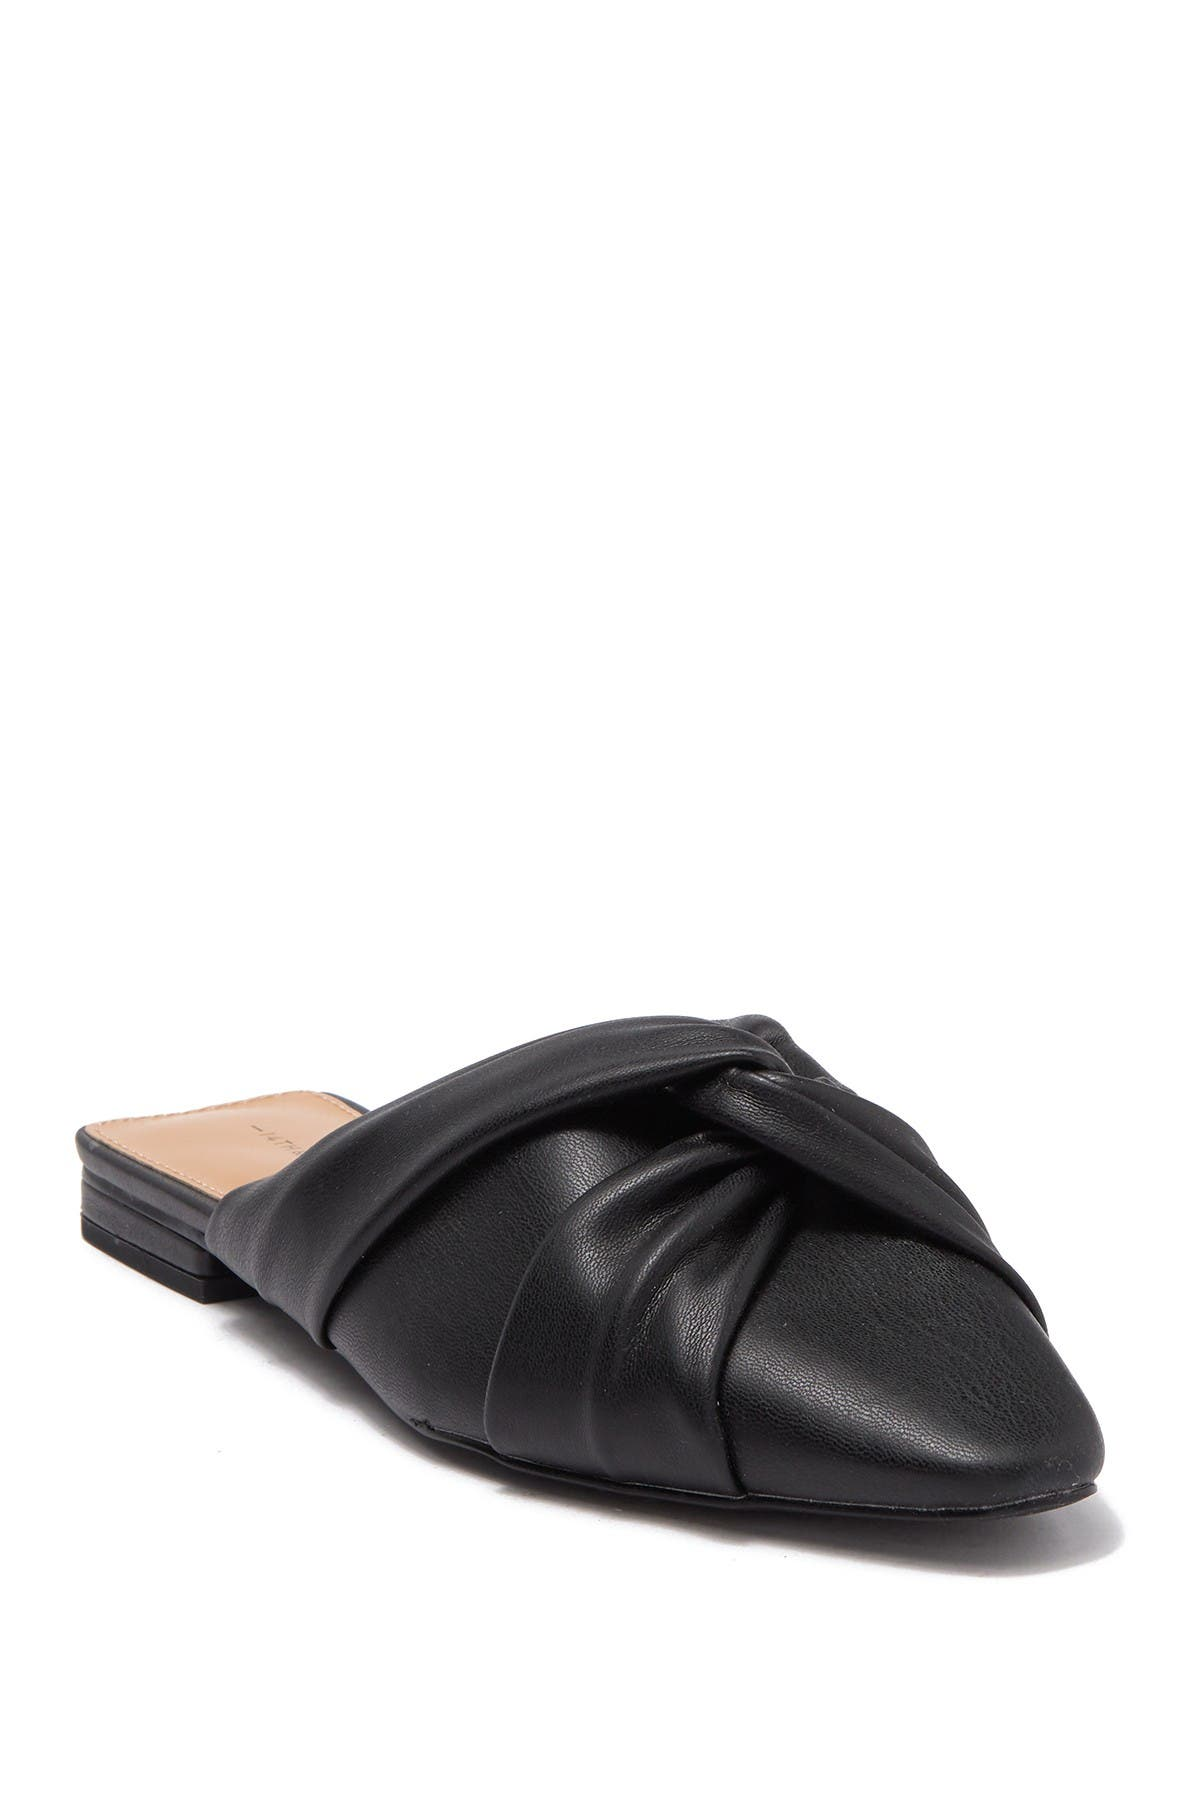 Image of 14th & Union Pearson Twist Pointed Toe Mule